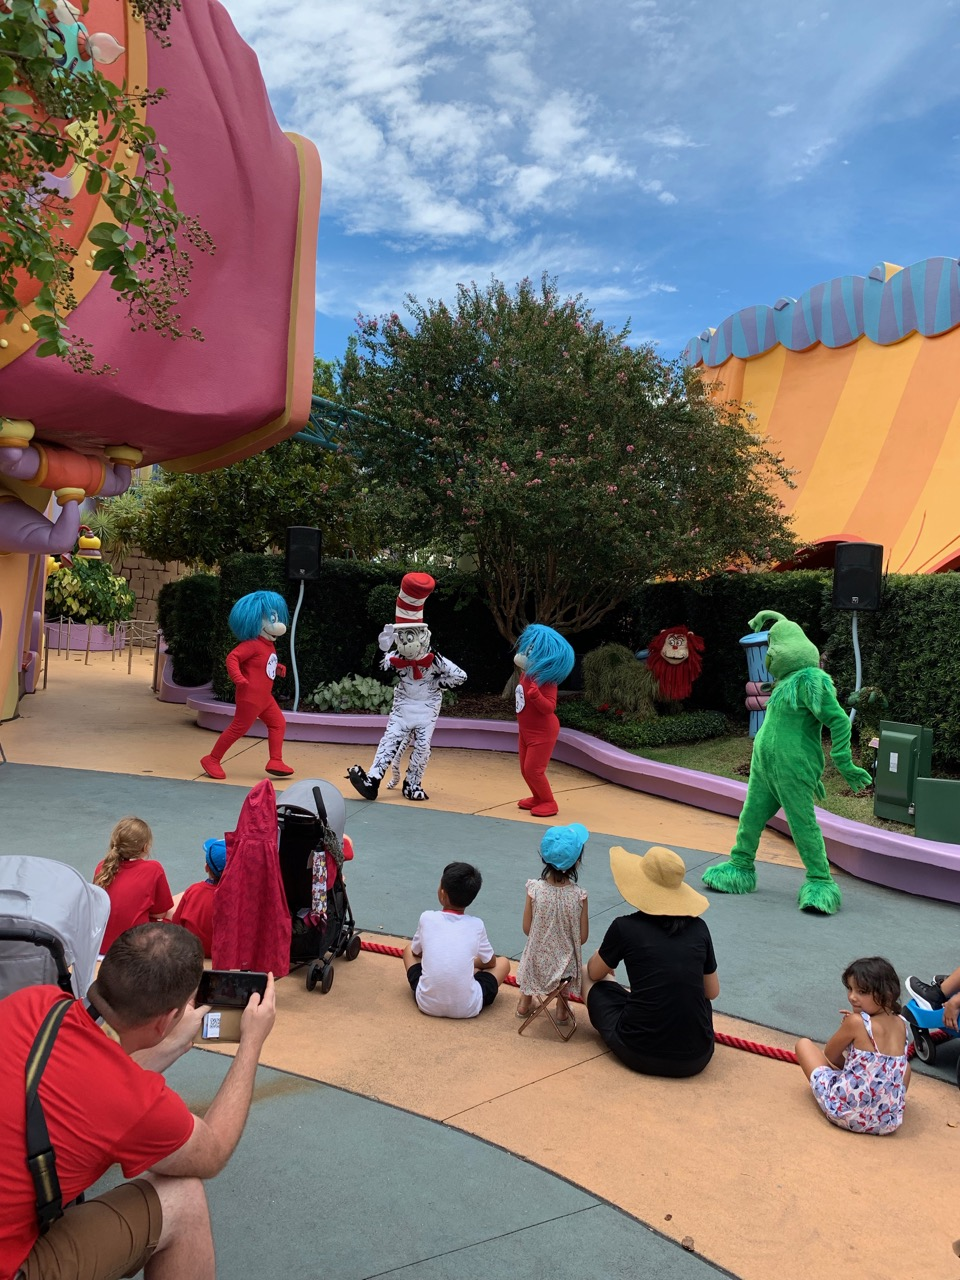 universal orlando summer 2019 trip report part 5 stories seuss.jpeg